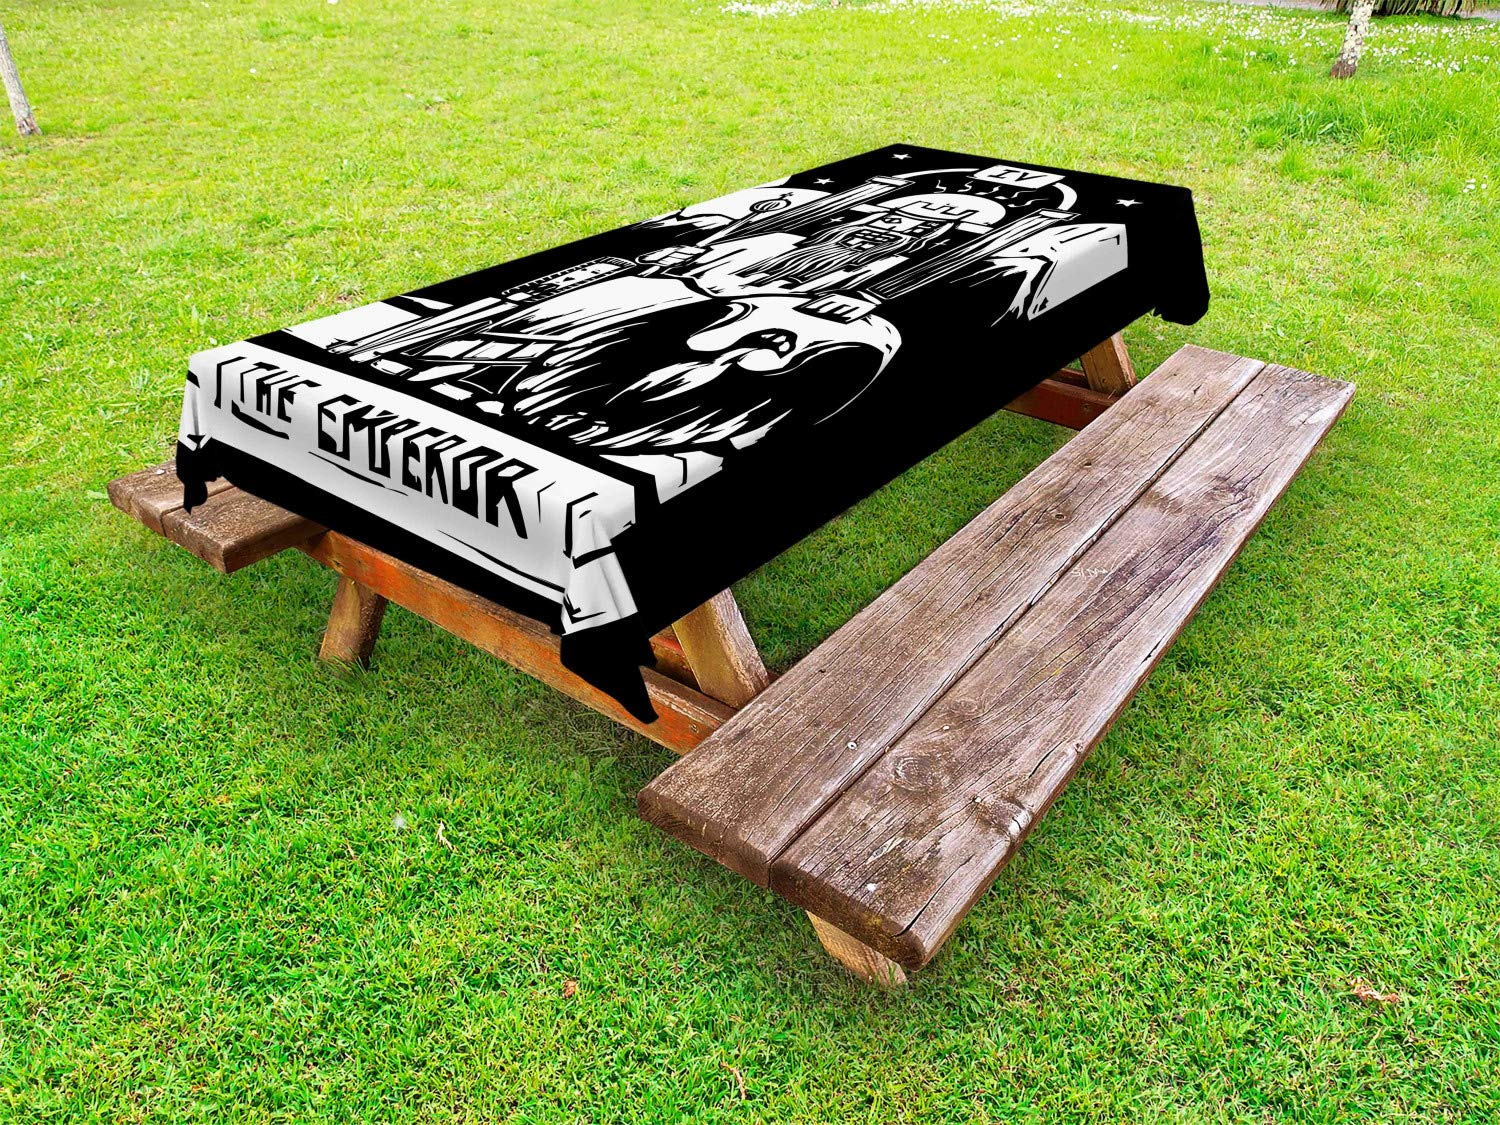 Ambesonne Tarot Outdoor Tablecloth, Tarot Card for The Emperor Woodcut Style Illustration Monochromatic Artwork, Decorative Washable Picnic Table Cloth, 58 X 120 Inches, Black and White